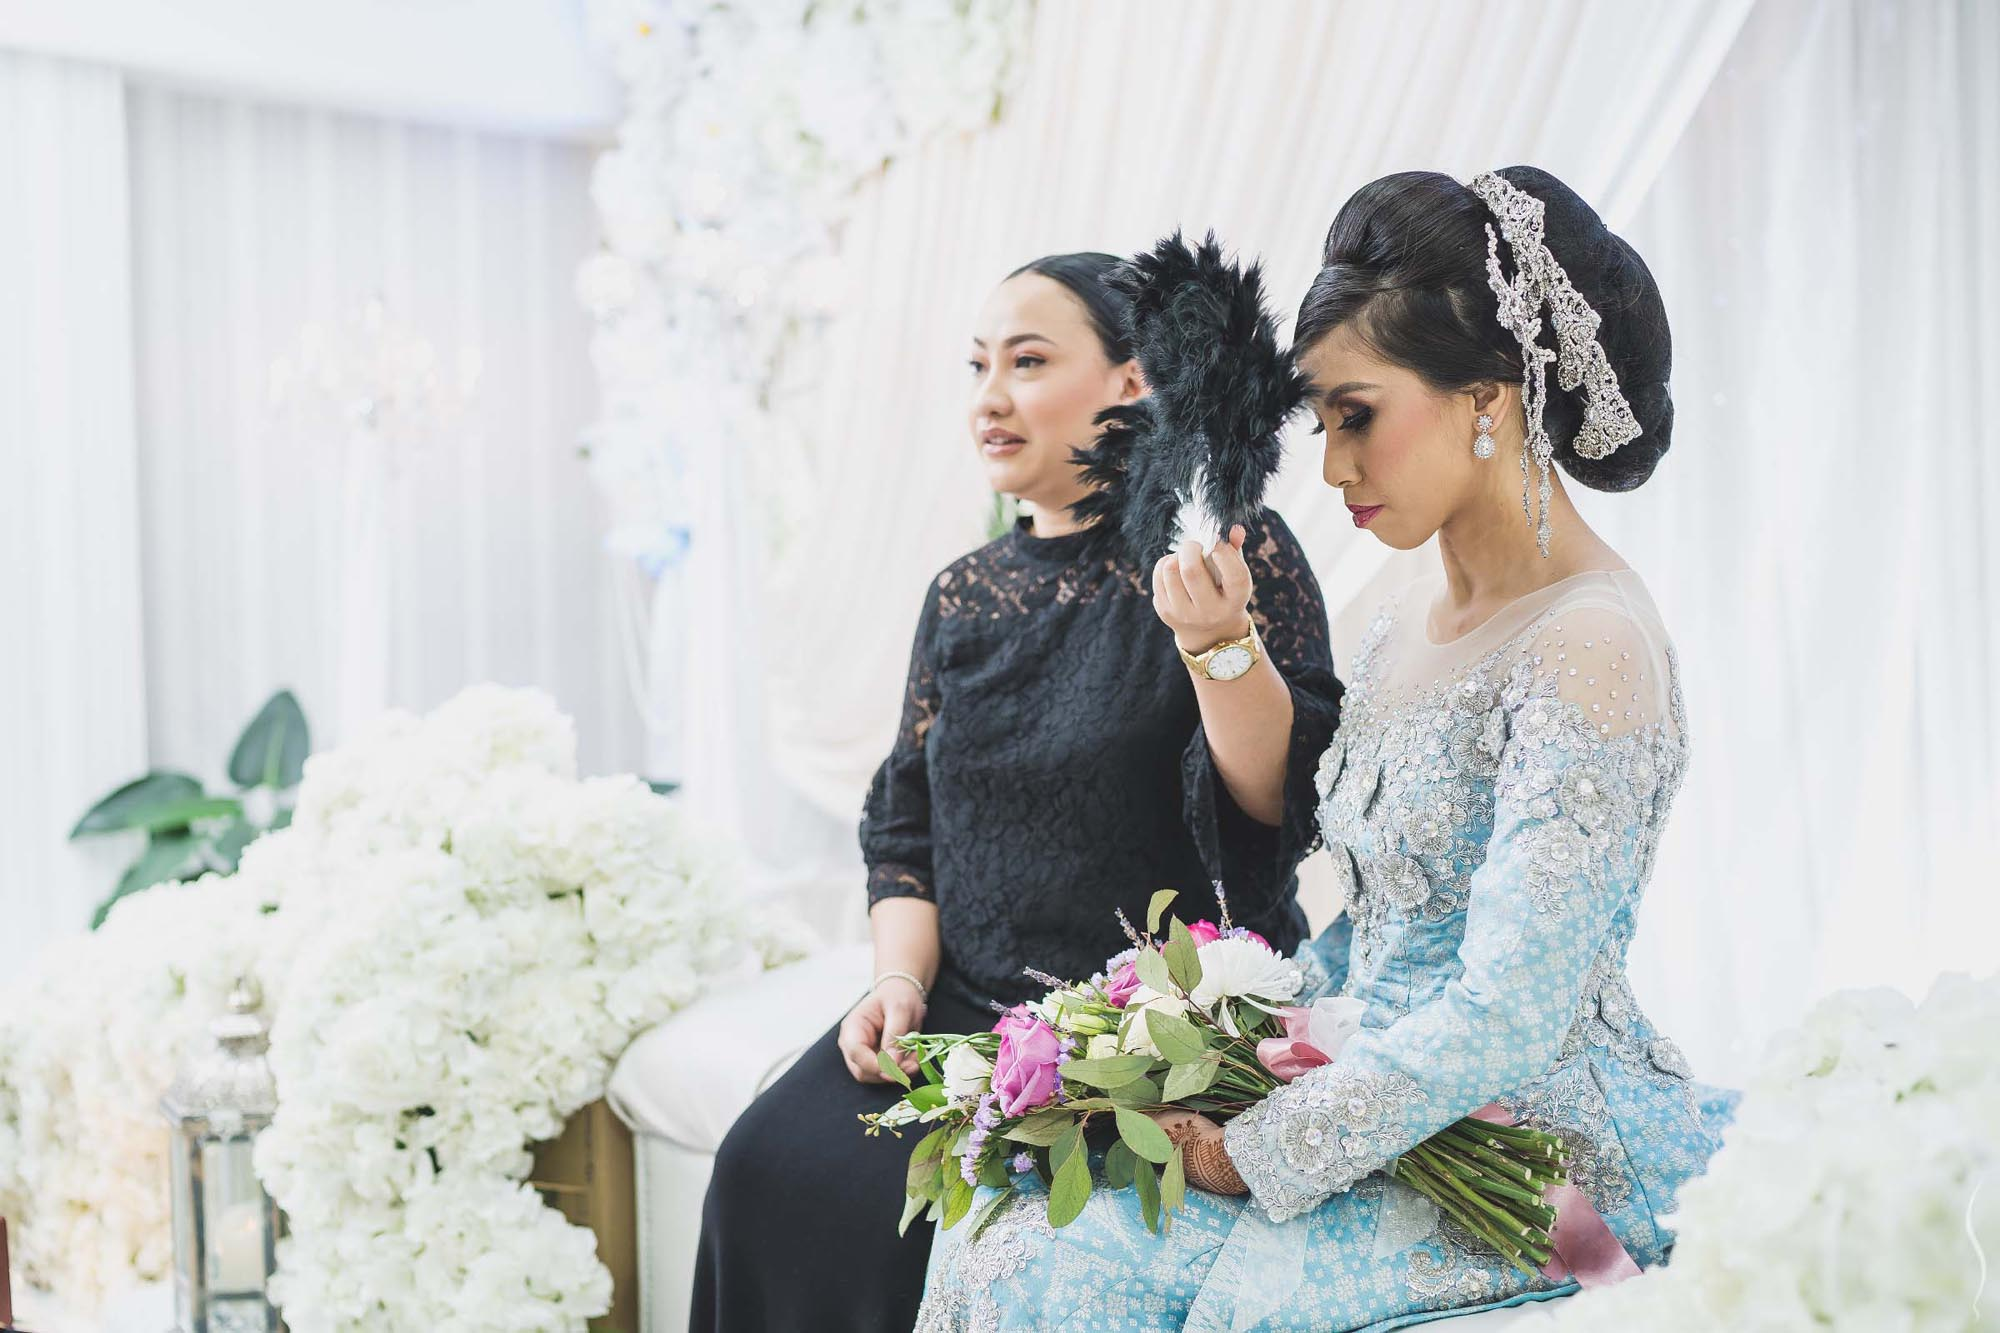 Malay Wedding at Fave on Orchard by Muslim Delights: Airiz & Nurul ...